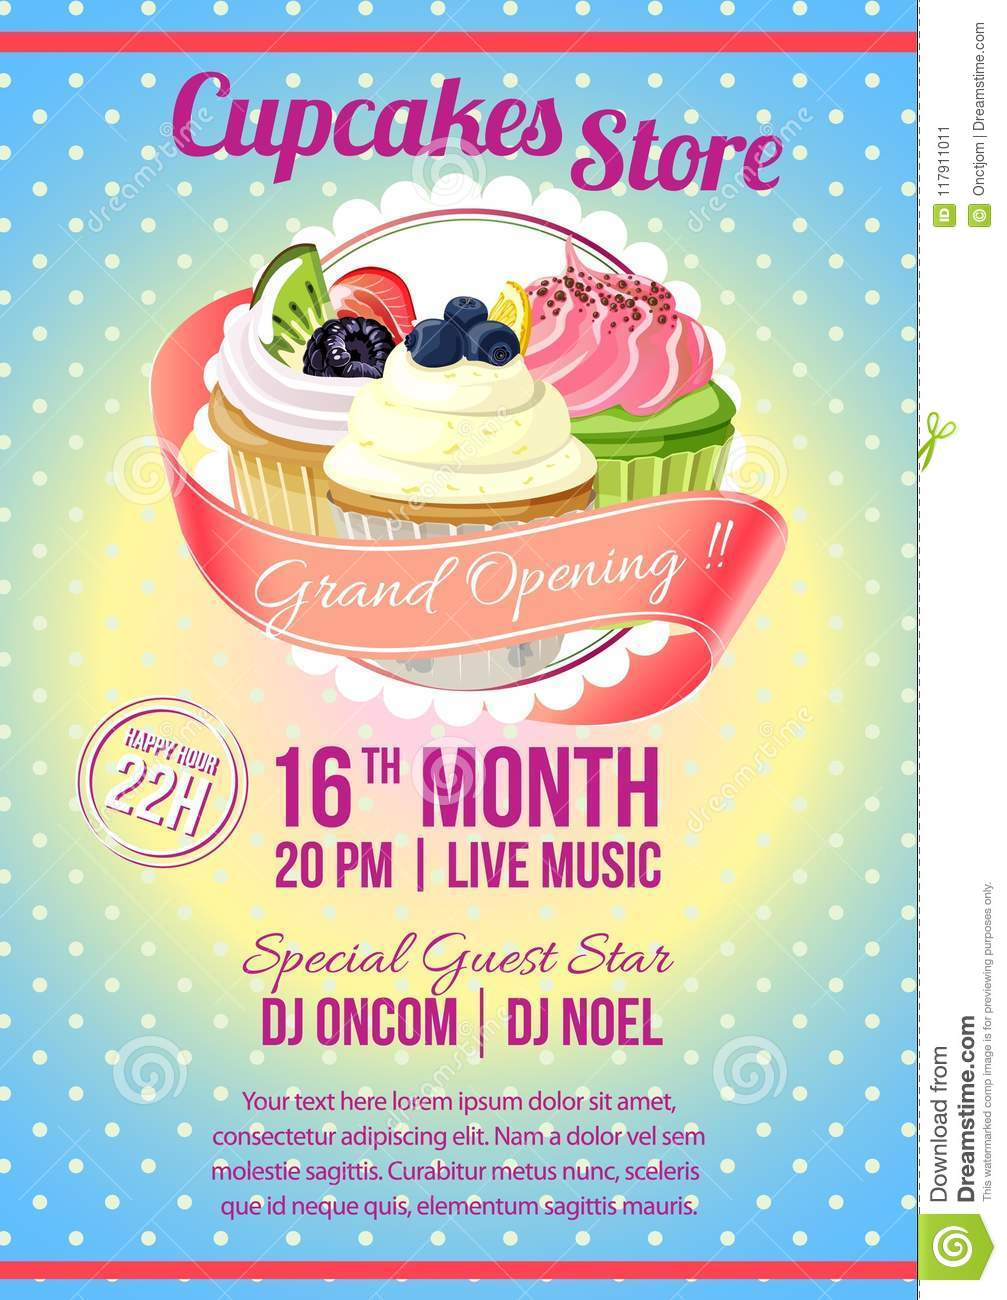 Cupcake Store Grand Opening Poster Template Stock Vector